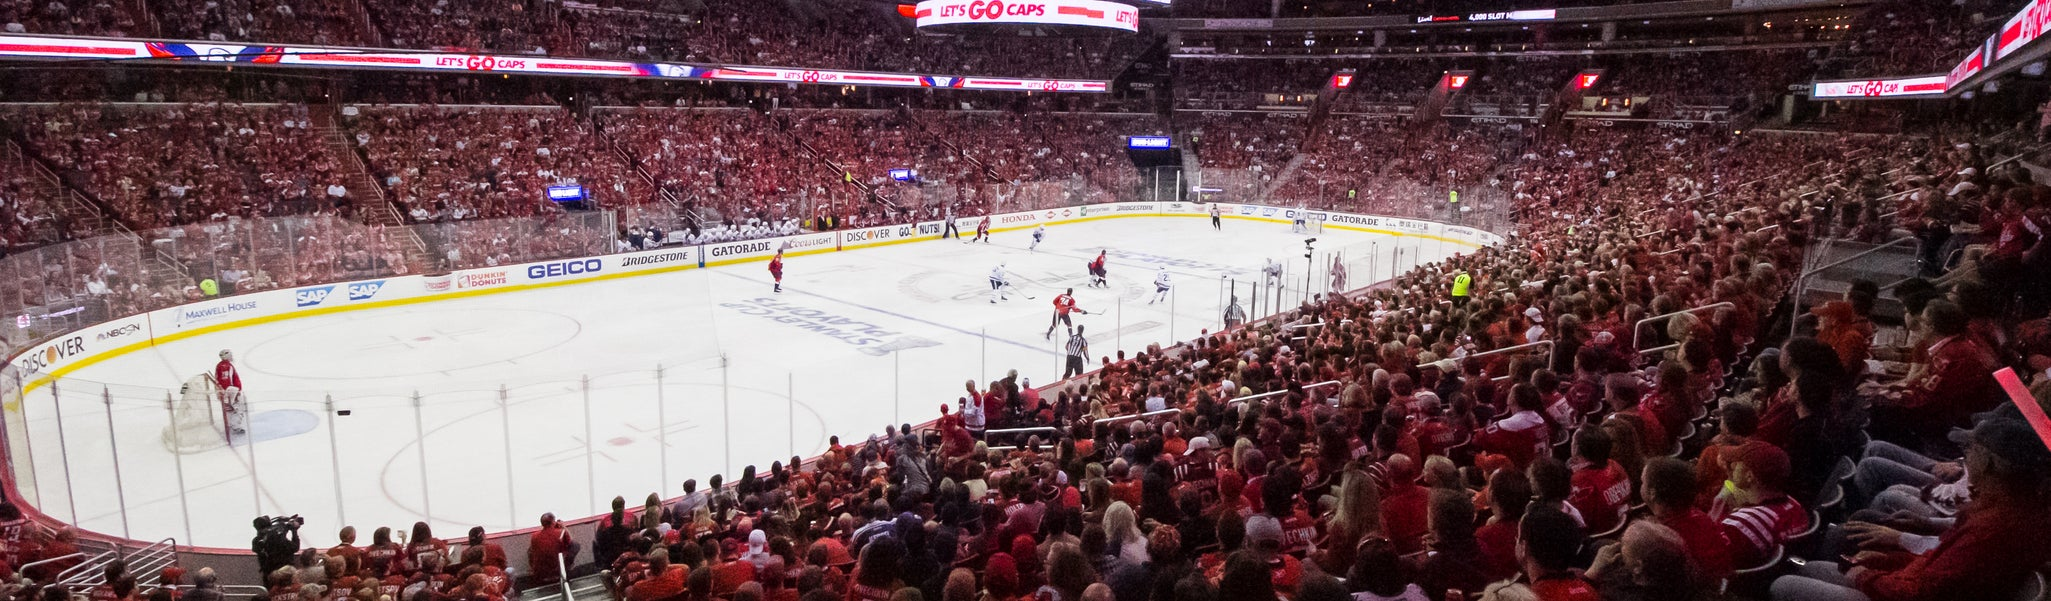 Seat view from LL Preferred 108 at Capital One Arena